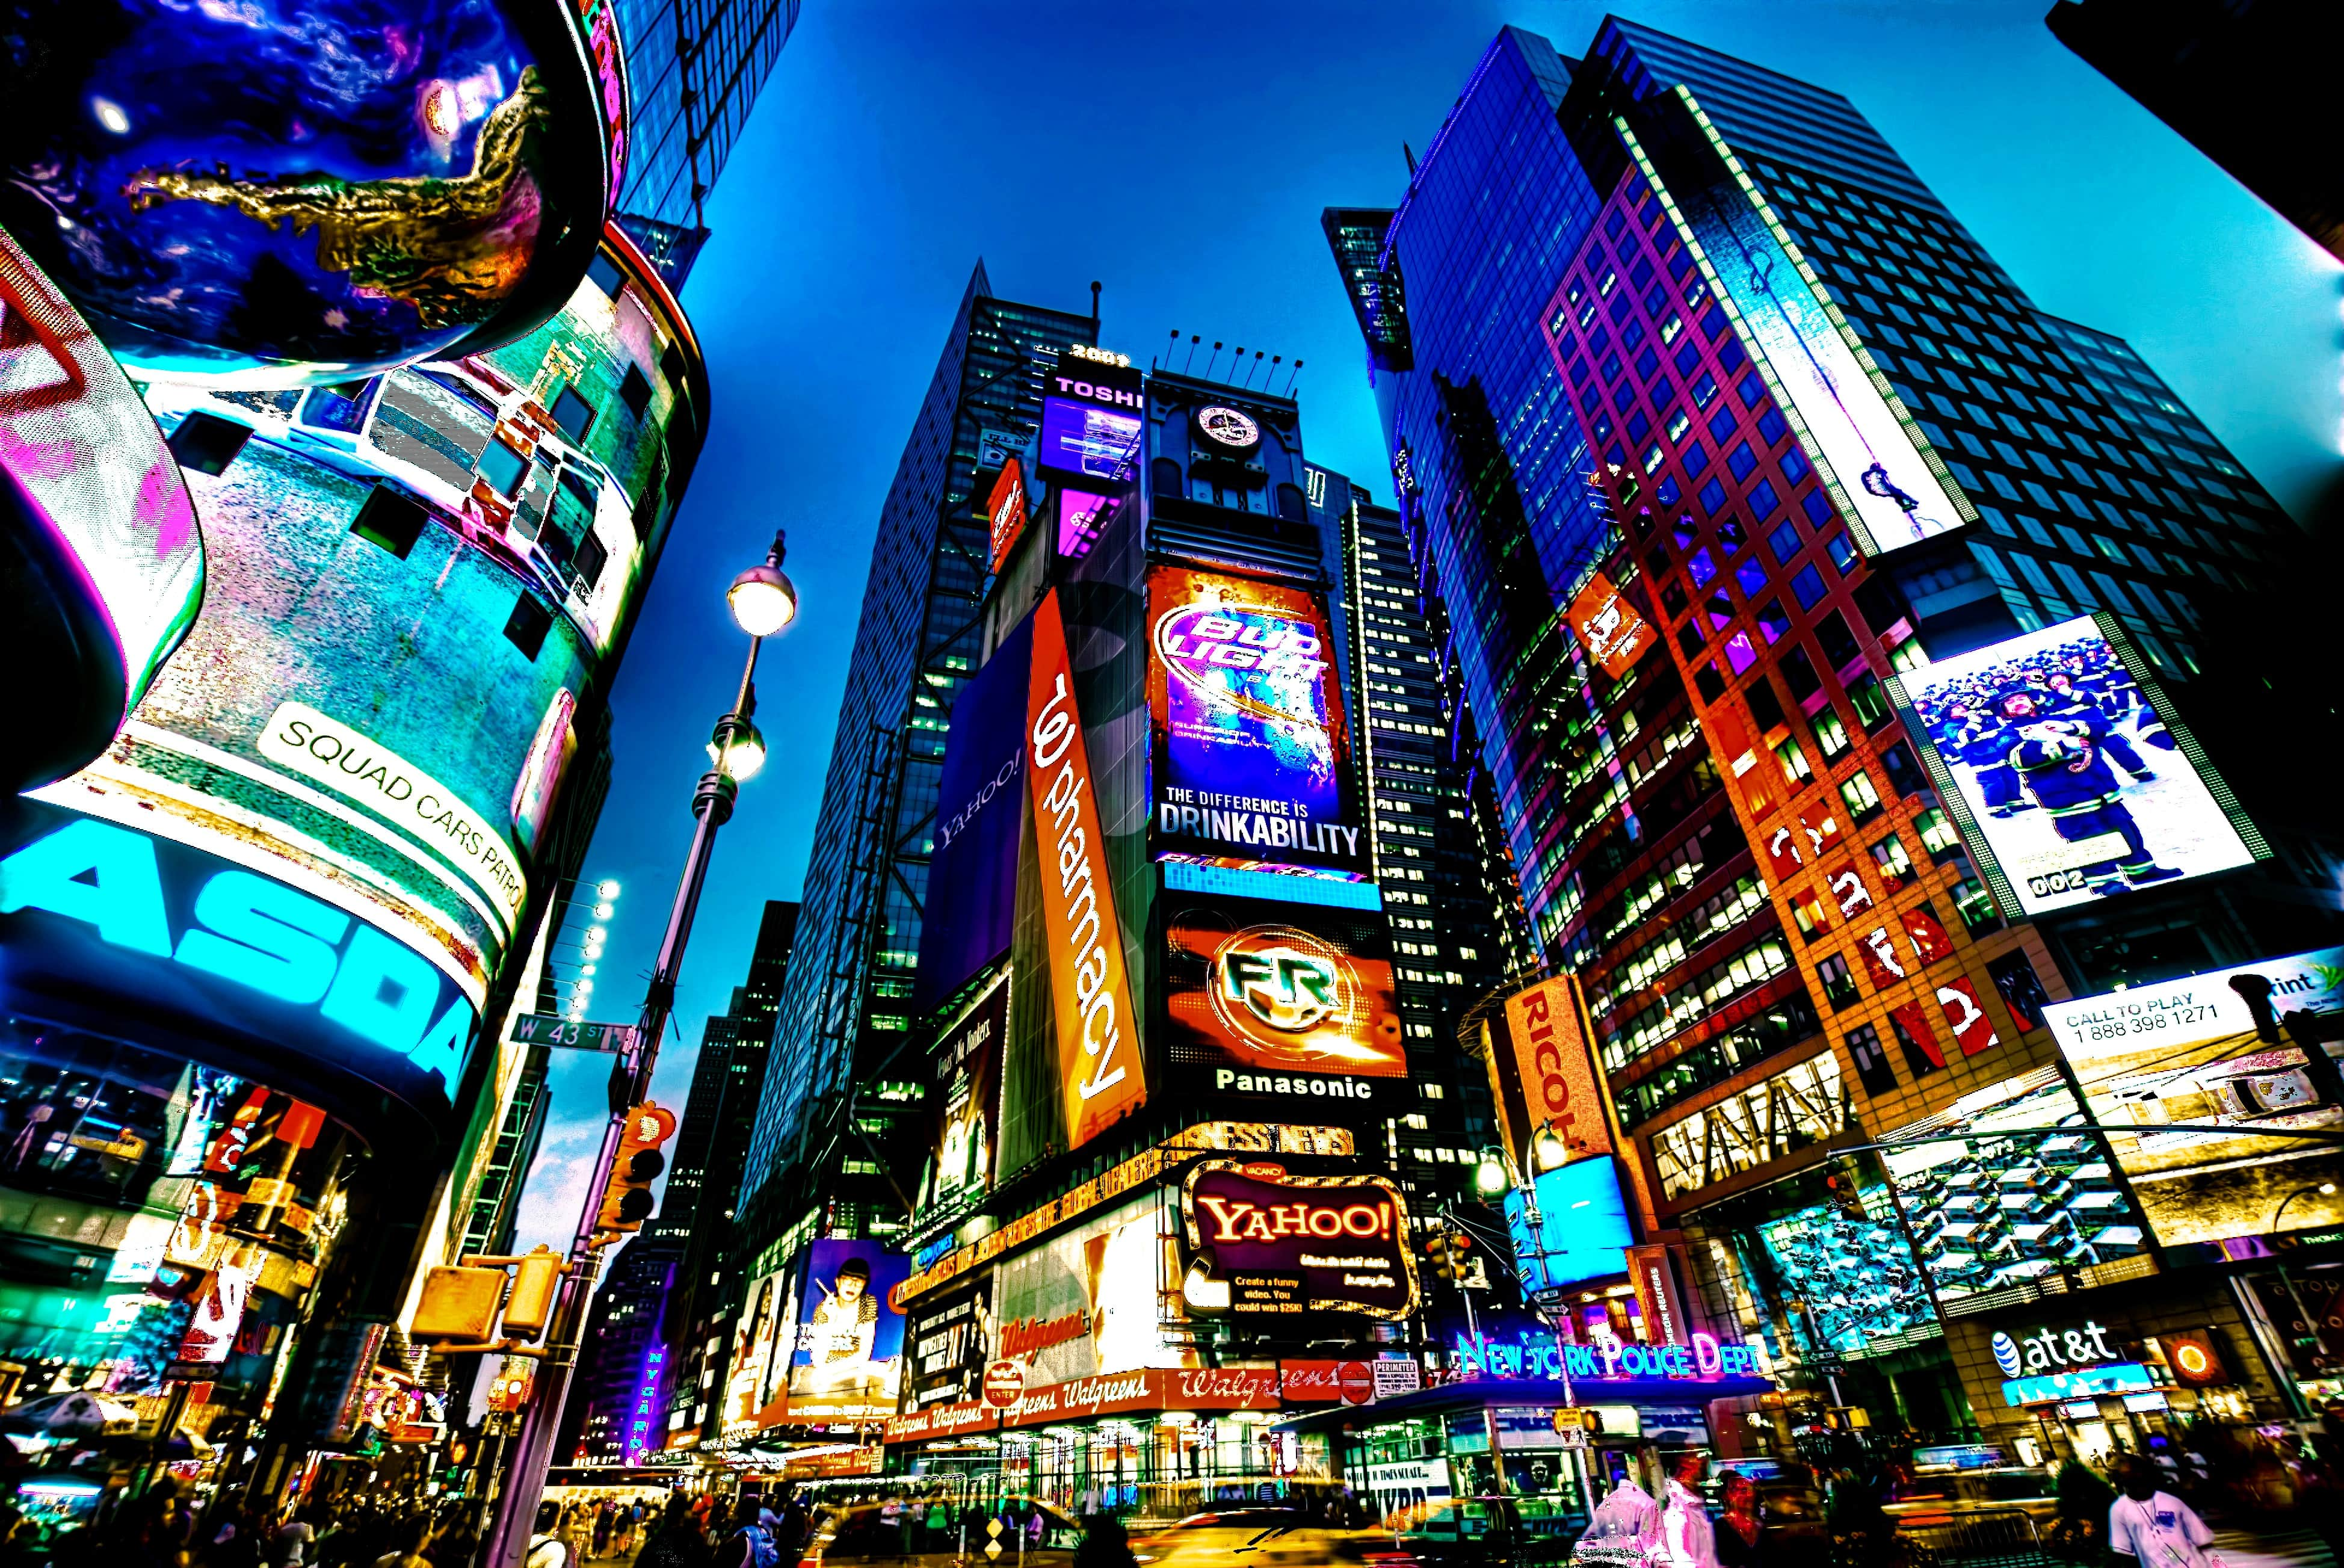 The growing digital signage industry and its effects on advertising.